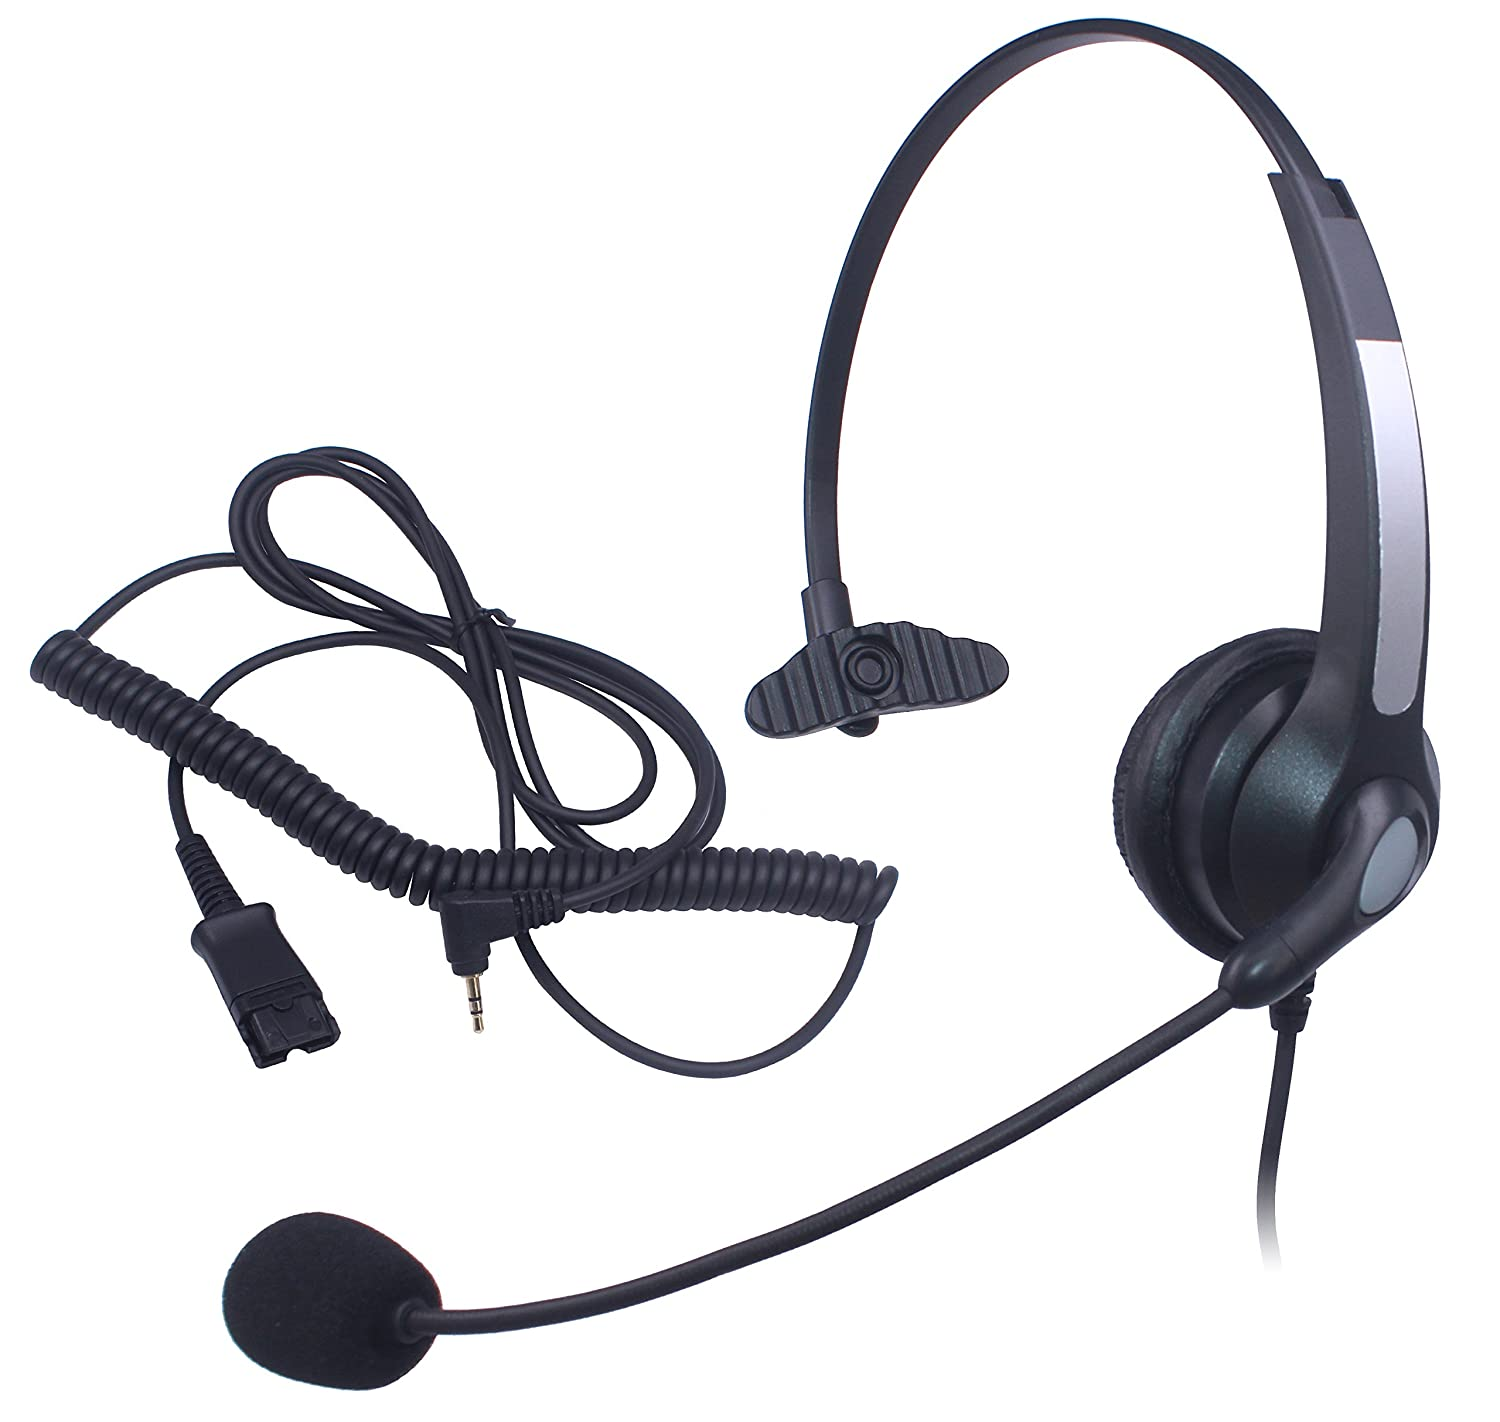 Audicom 2.5mm Call Center Headset Headphone with Mic and Quick Disconnect for Cisco Linksys SPA SPA921 SPA922 SPA941 SPA942 SPA962 303 501G 502G 504G 508G 509G 525G Telephone IP Phones (H300QD25A)